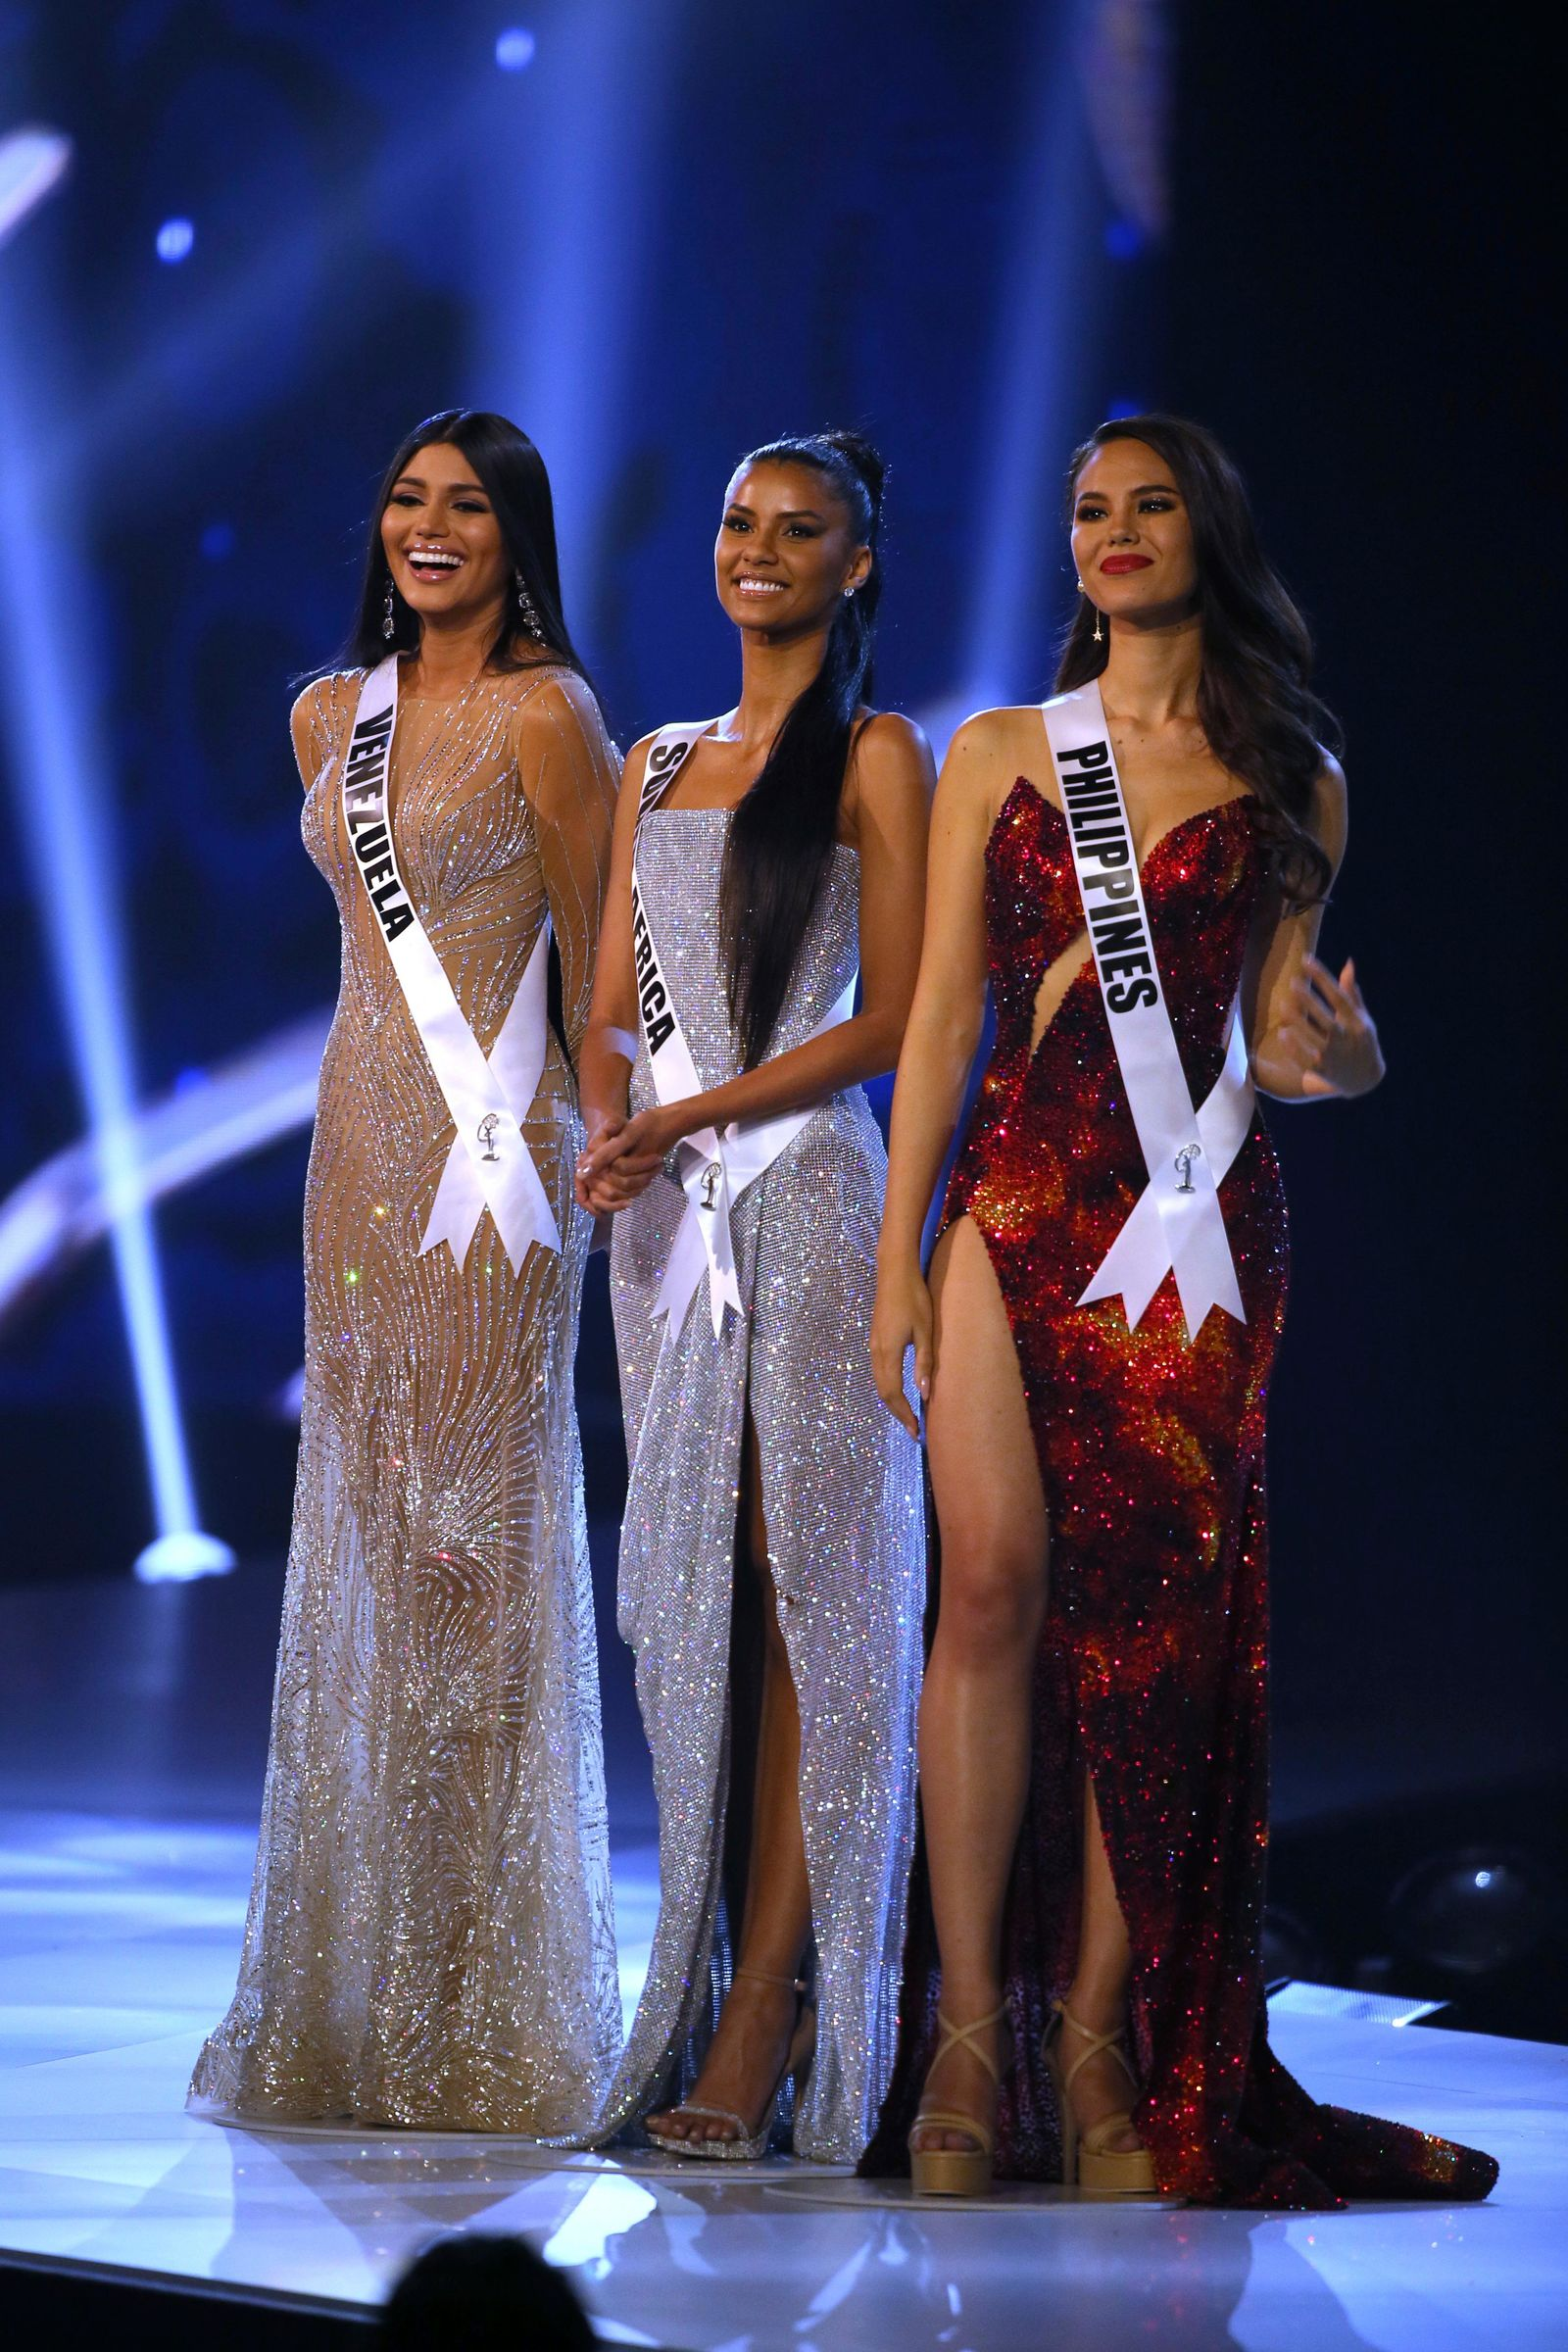 Top 3 finalists from left to right, Miss Venezuela Sthefany Gutierrez, Miss South Africa Tamaryn Green, Miss Philippines Catriona Gray, stand on the stage during the final of 67th Miss Universe competition in Bangkok, Thailand, Monday, Dec. 17, 2018.(AP Photo/Gemunu Amarasinghe)